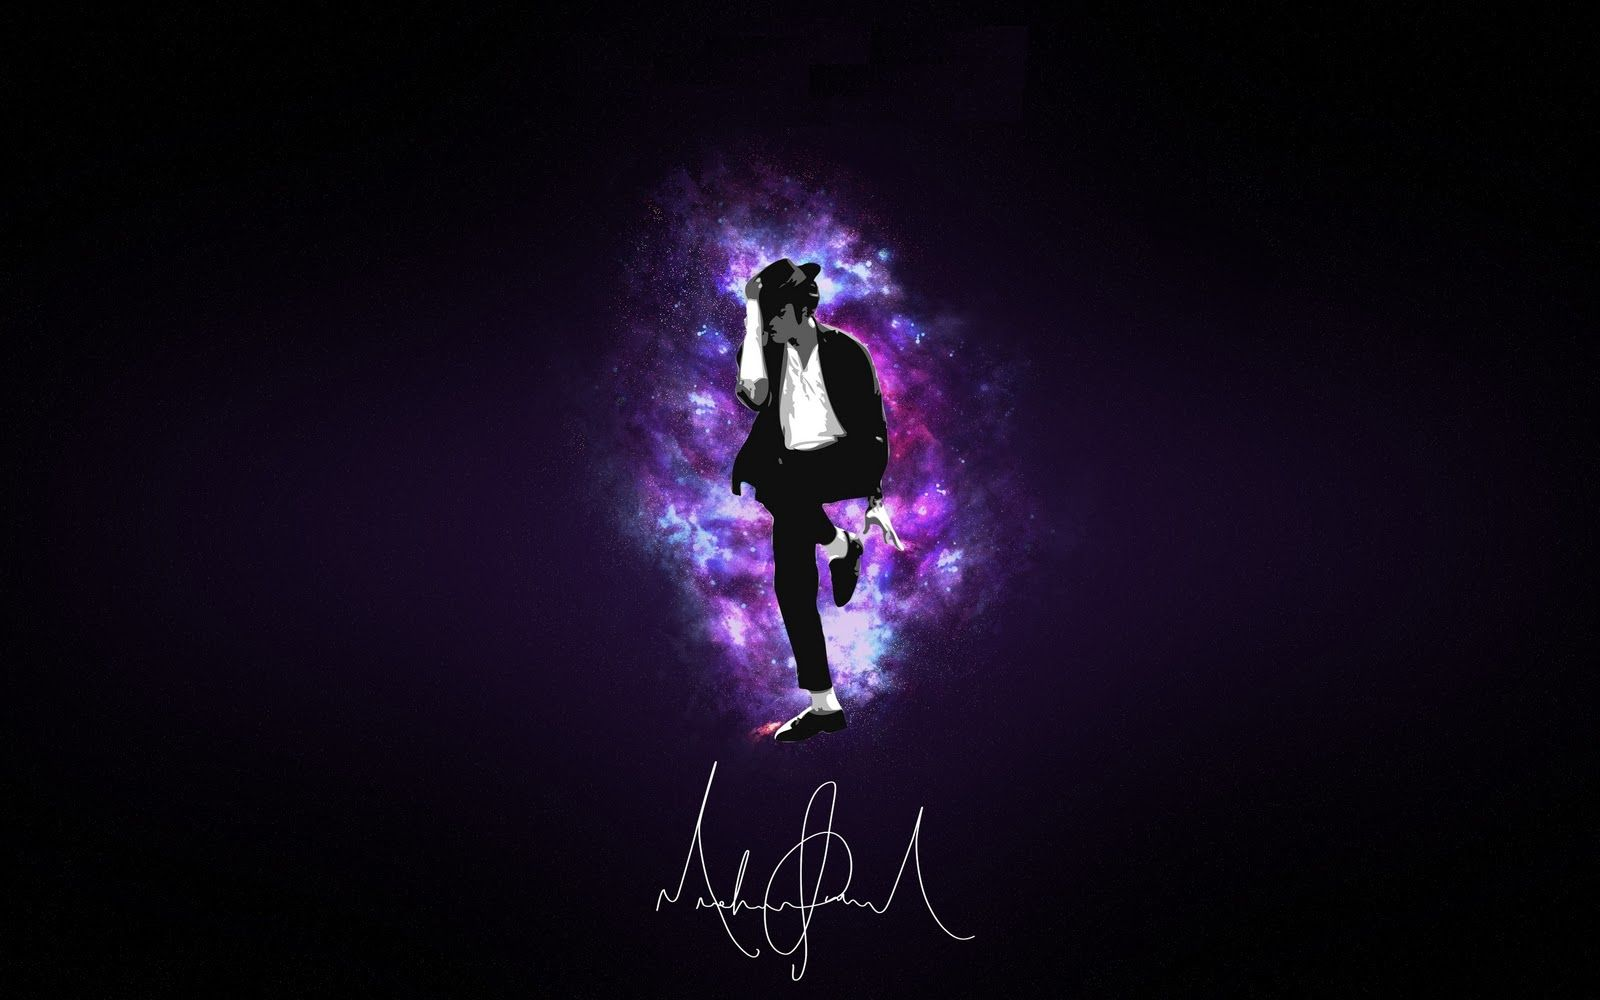 Michael Jackson Moonwalk Wallpaper Images Michael Jackson 1600x1000